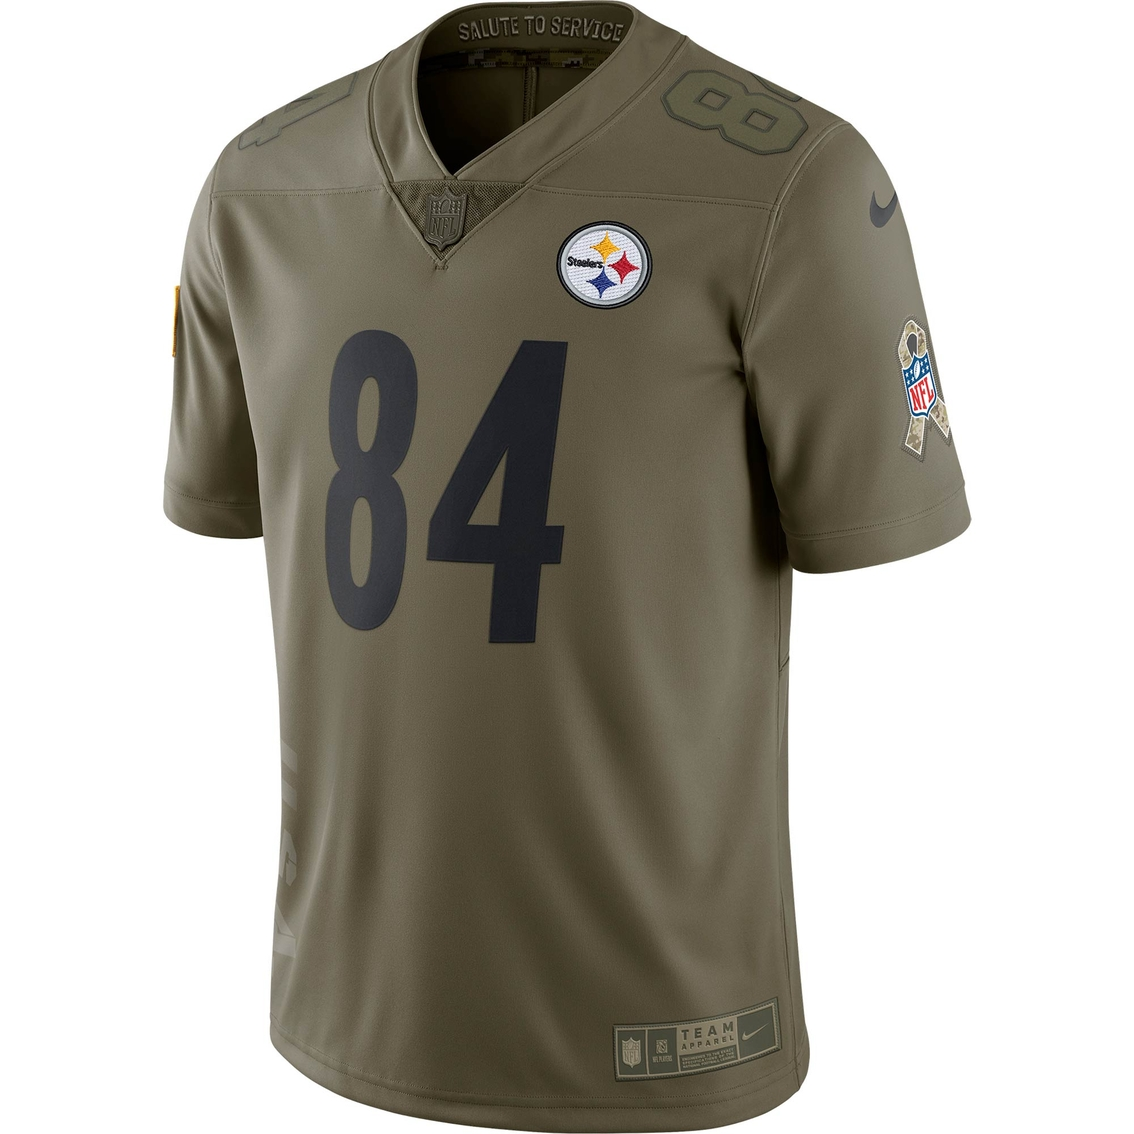 size 40 2bcdc 4f8ad Nike Nfl Pittsburgh Steelers Brown Jersey | Jerseys | Sports ...